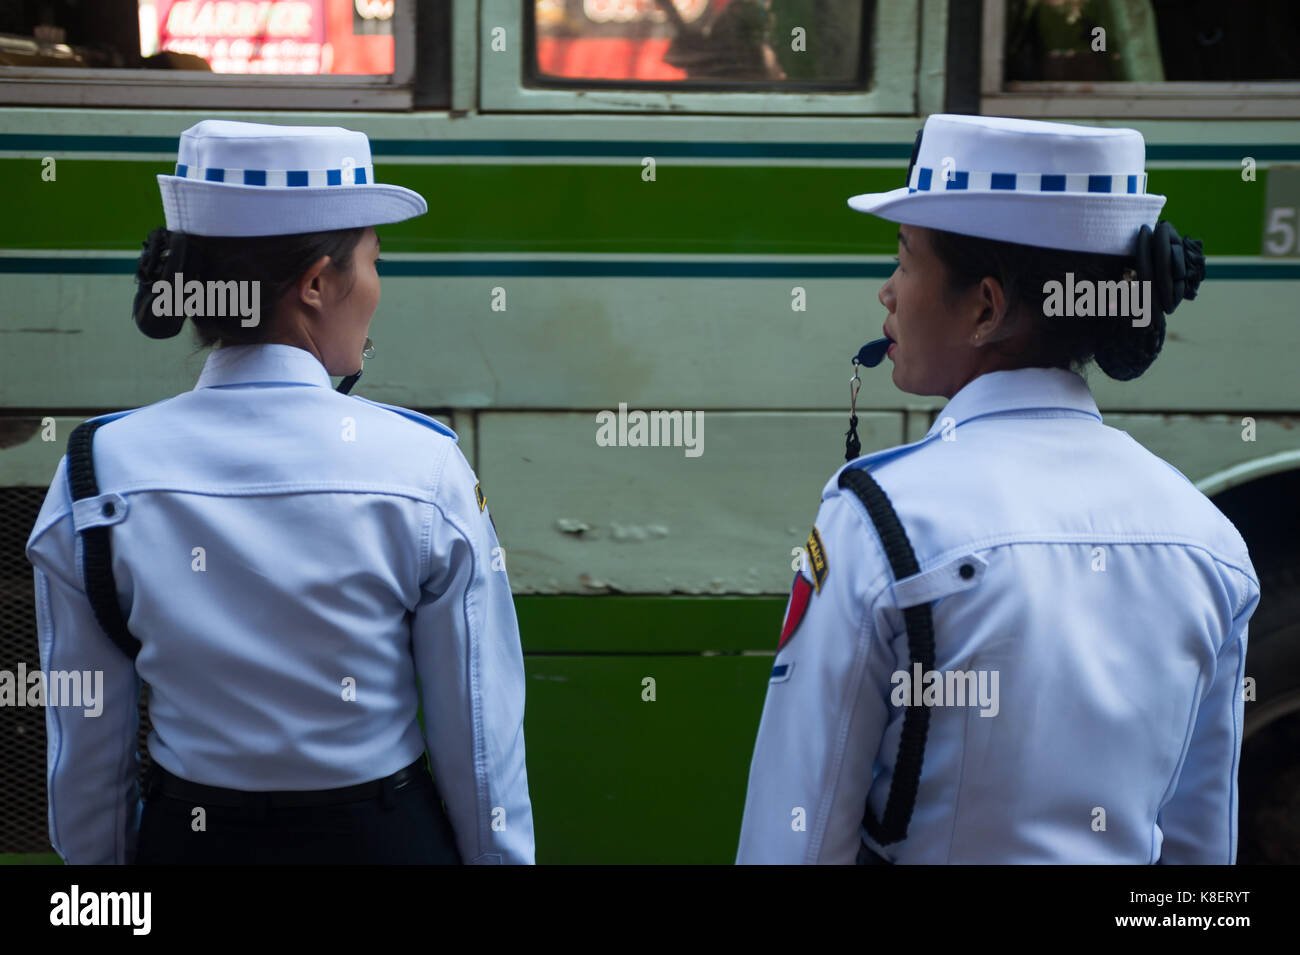 26.01.2017, Yangon, Yangon Region, Republic of the Union of Myanmar, Asia - Two female traffic police officers stand Stock Photo